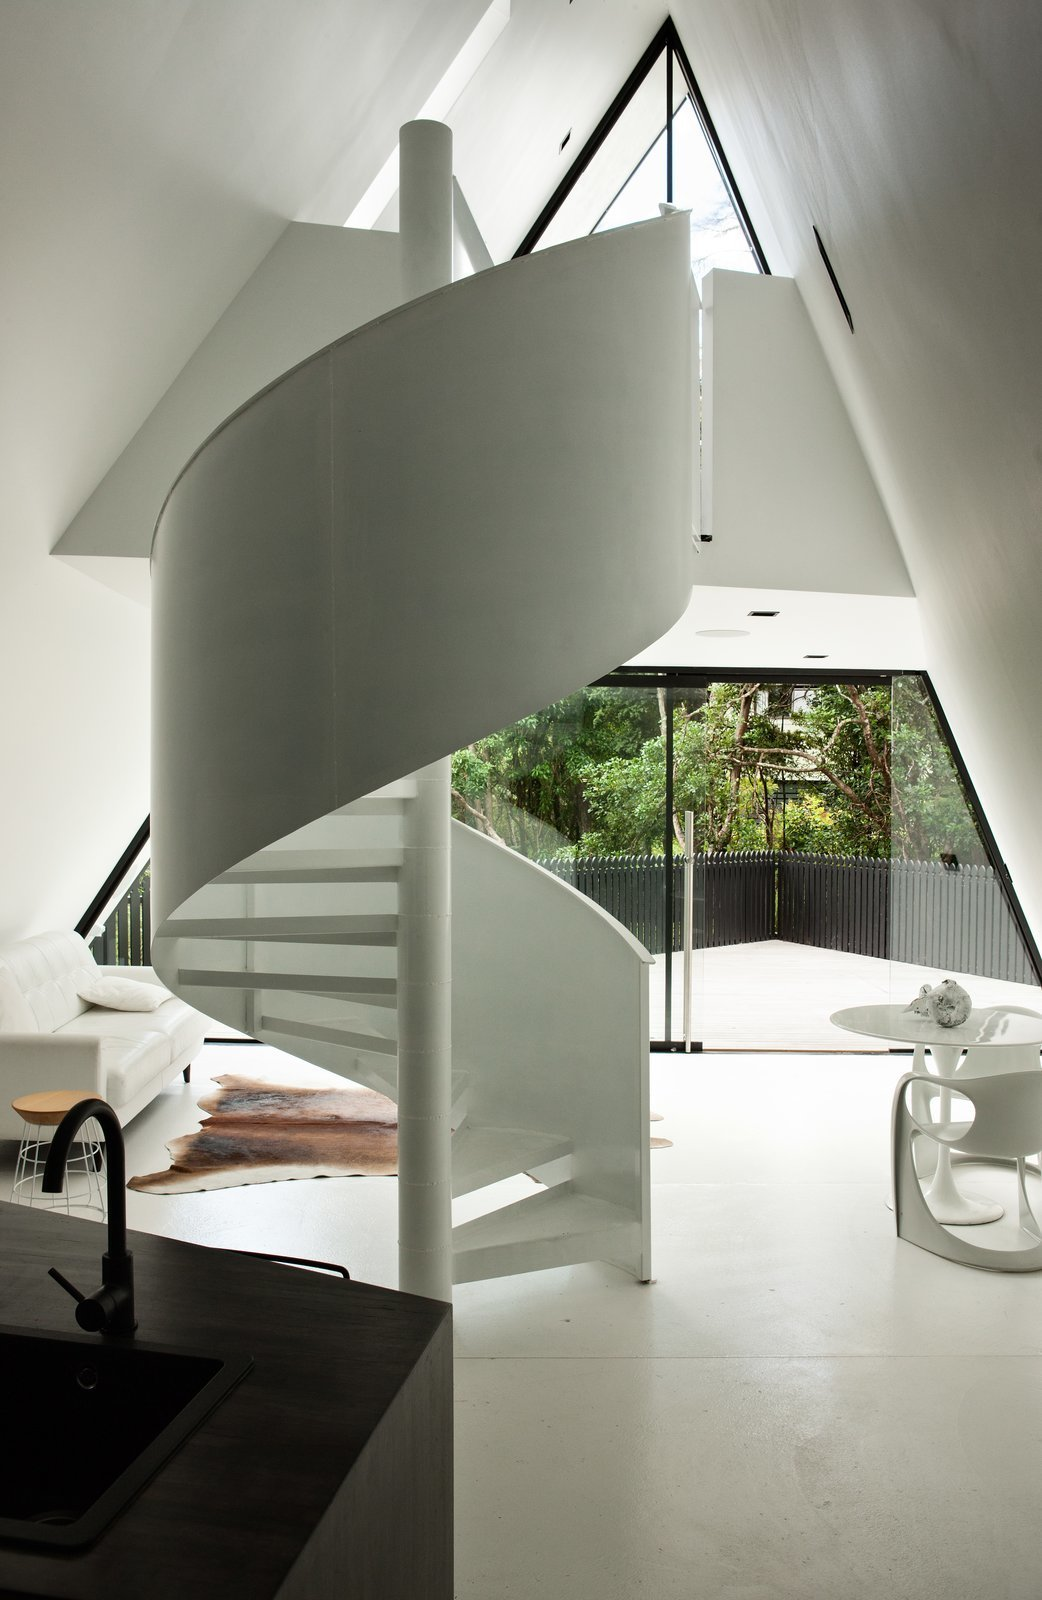 The sharp ridgeline and soaring soffit reference a tent-like experience in an architecturally elegant way. Tagged: Staircase, Metal Railing, and Metal Tread. Stay in a Tent-Inspired A-Frame Cabin in the New Zealand Rain Forest - Photo 4 of 8